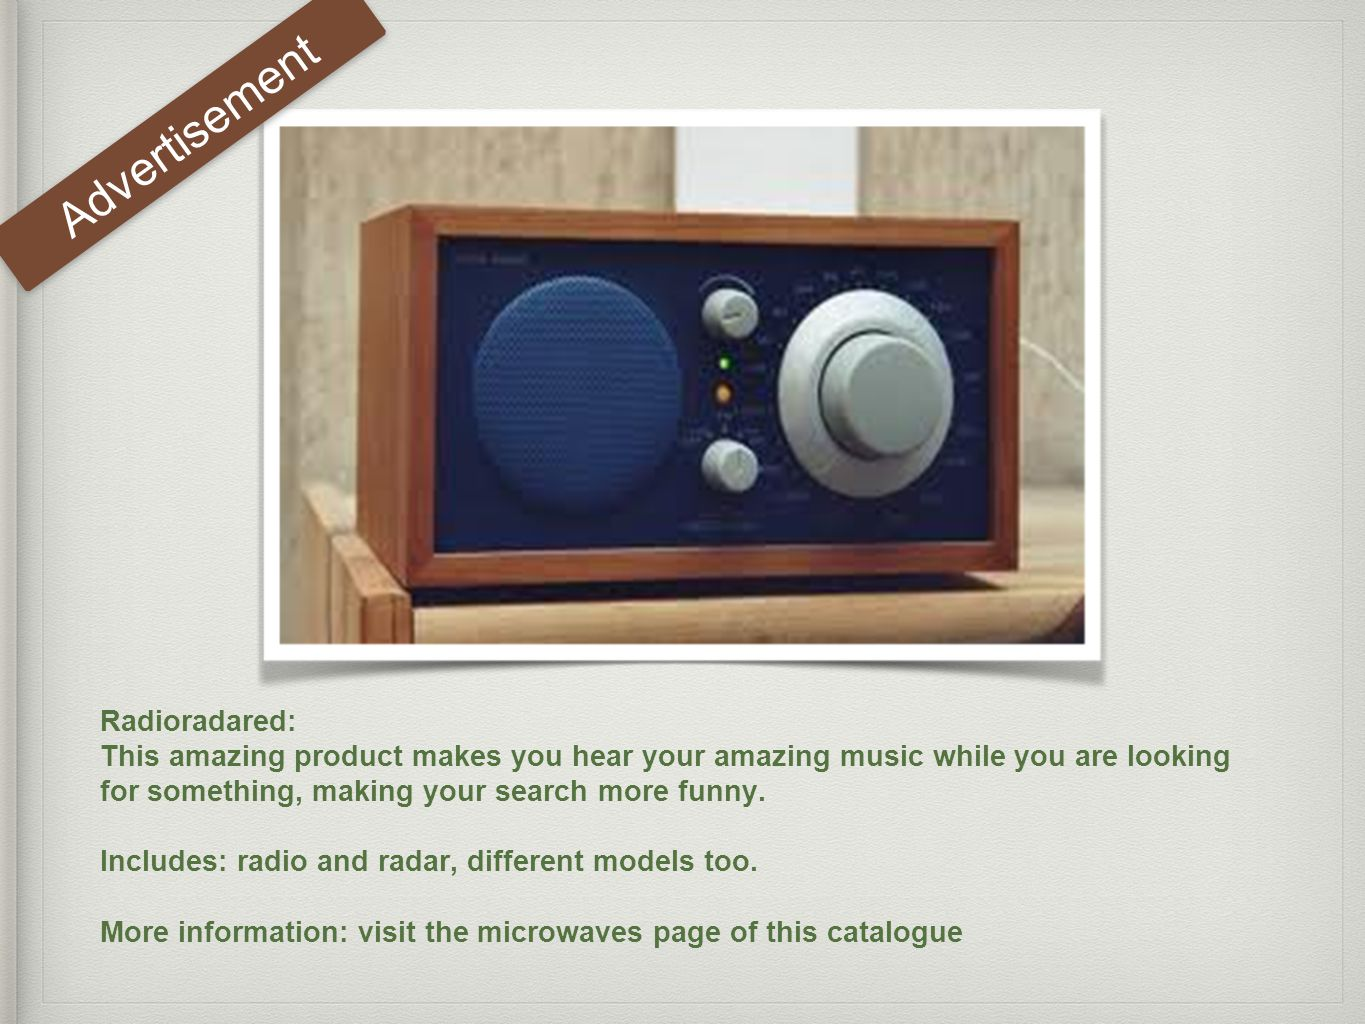 Radioradared: This amazing product makes you hear your amazing music while you are looking for something, making your search more funny.